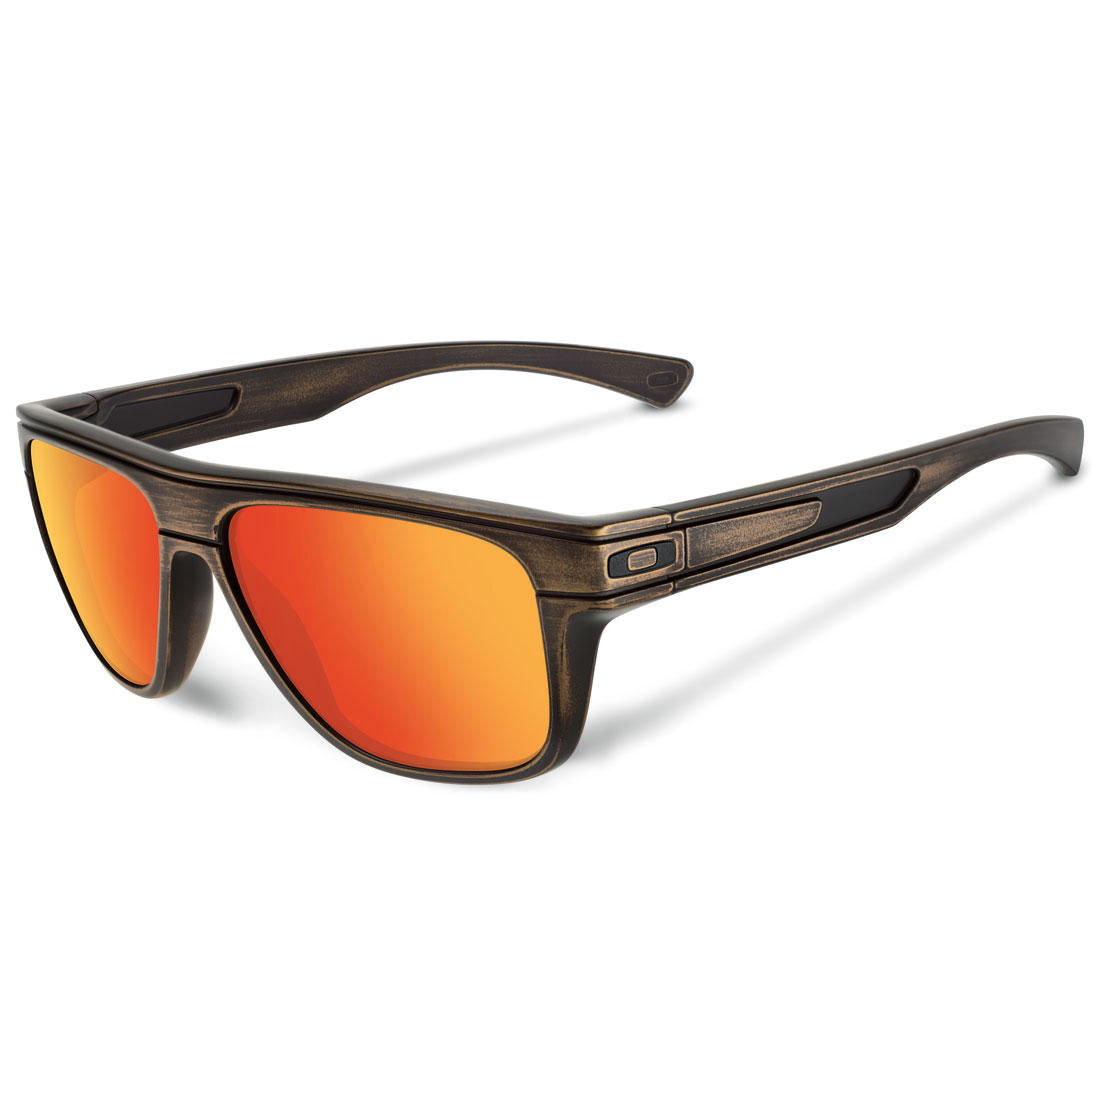 1bdf54a834 Oakley Sunglasses